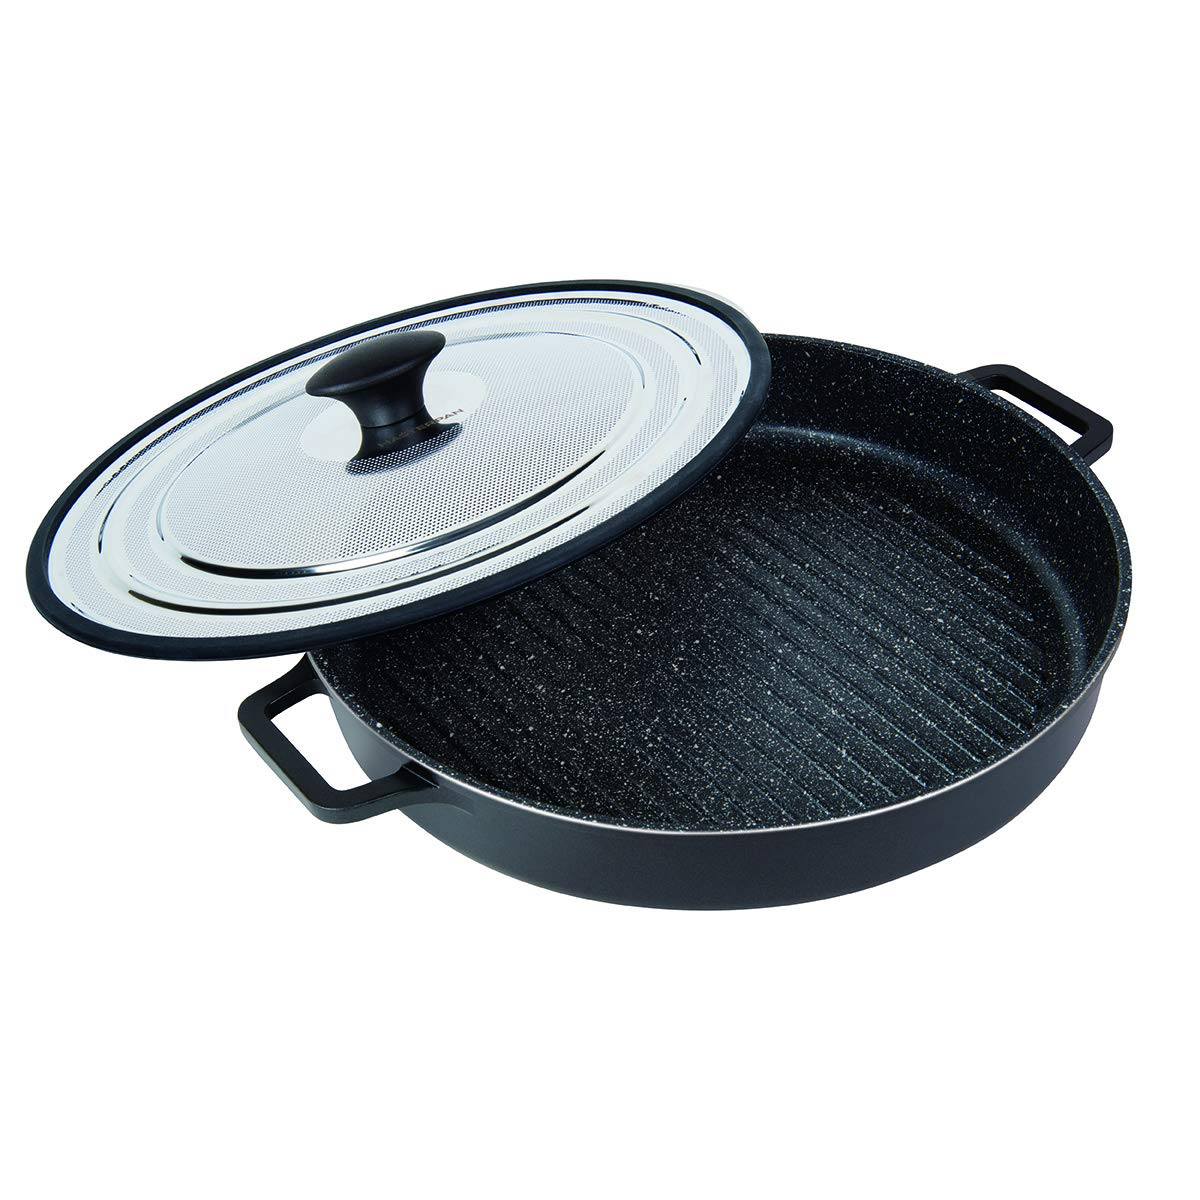 MasterPan Non-Stick Stovetop Oven Grill Pan with Heat-in Steam-Out Lid, nonstick cookware, 12'', Black, MP-107